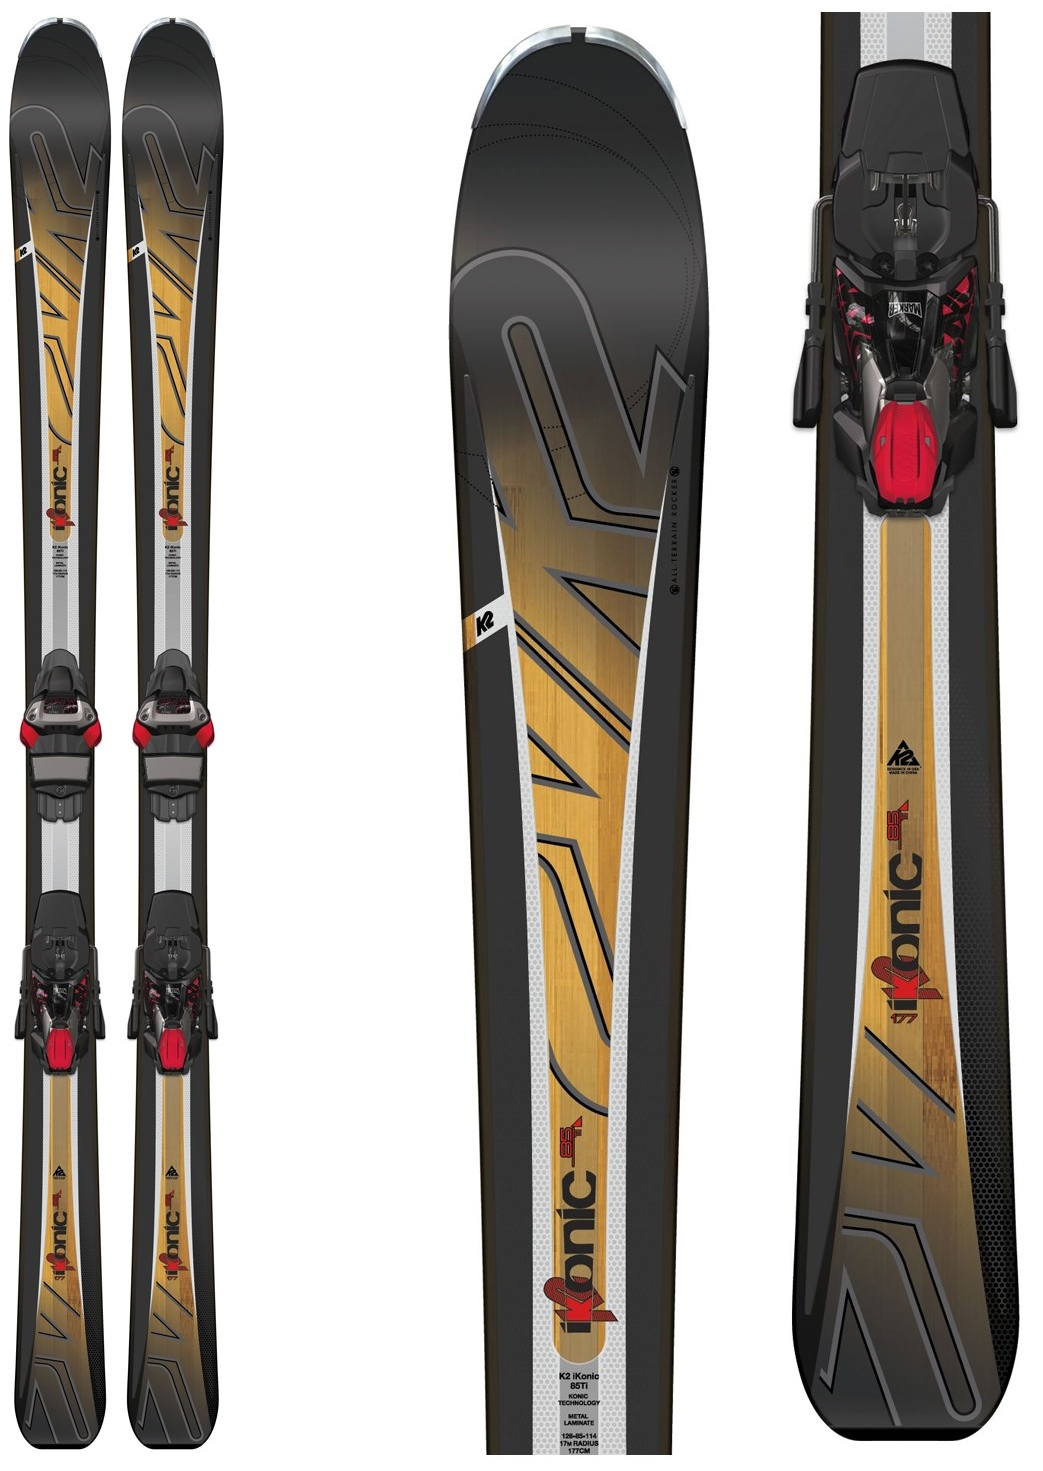 K2 iKonic 85Ti Skis with Marker MXC 12TCx Bindings, $900